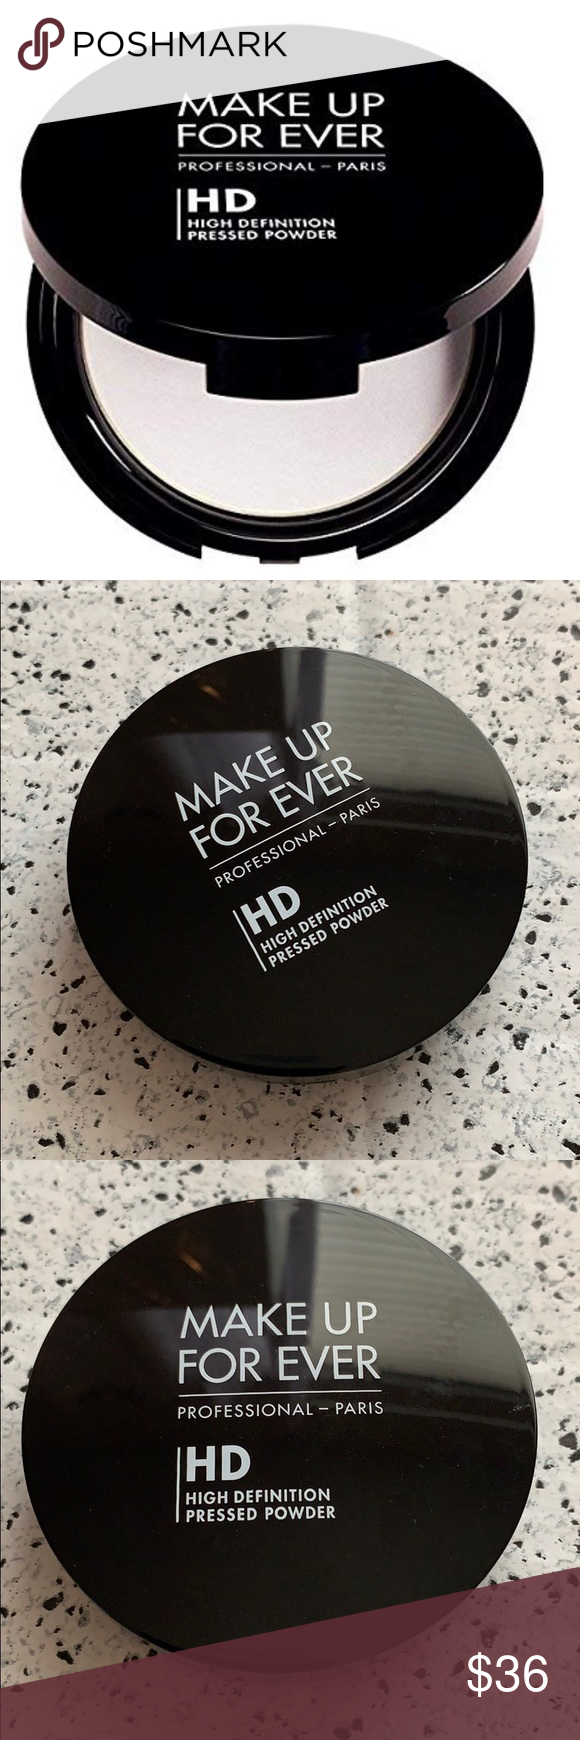 NEW Make Up For Ever Microfinish Pressed Powder in 2020